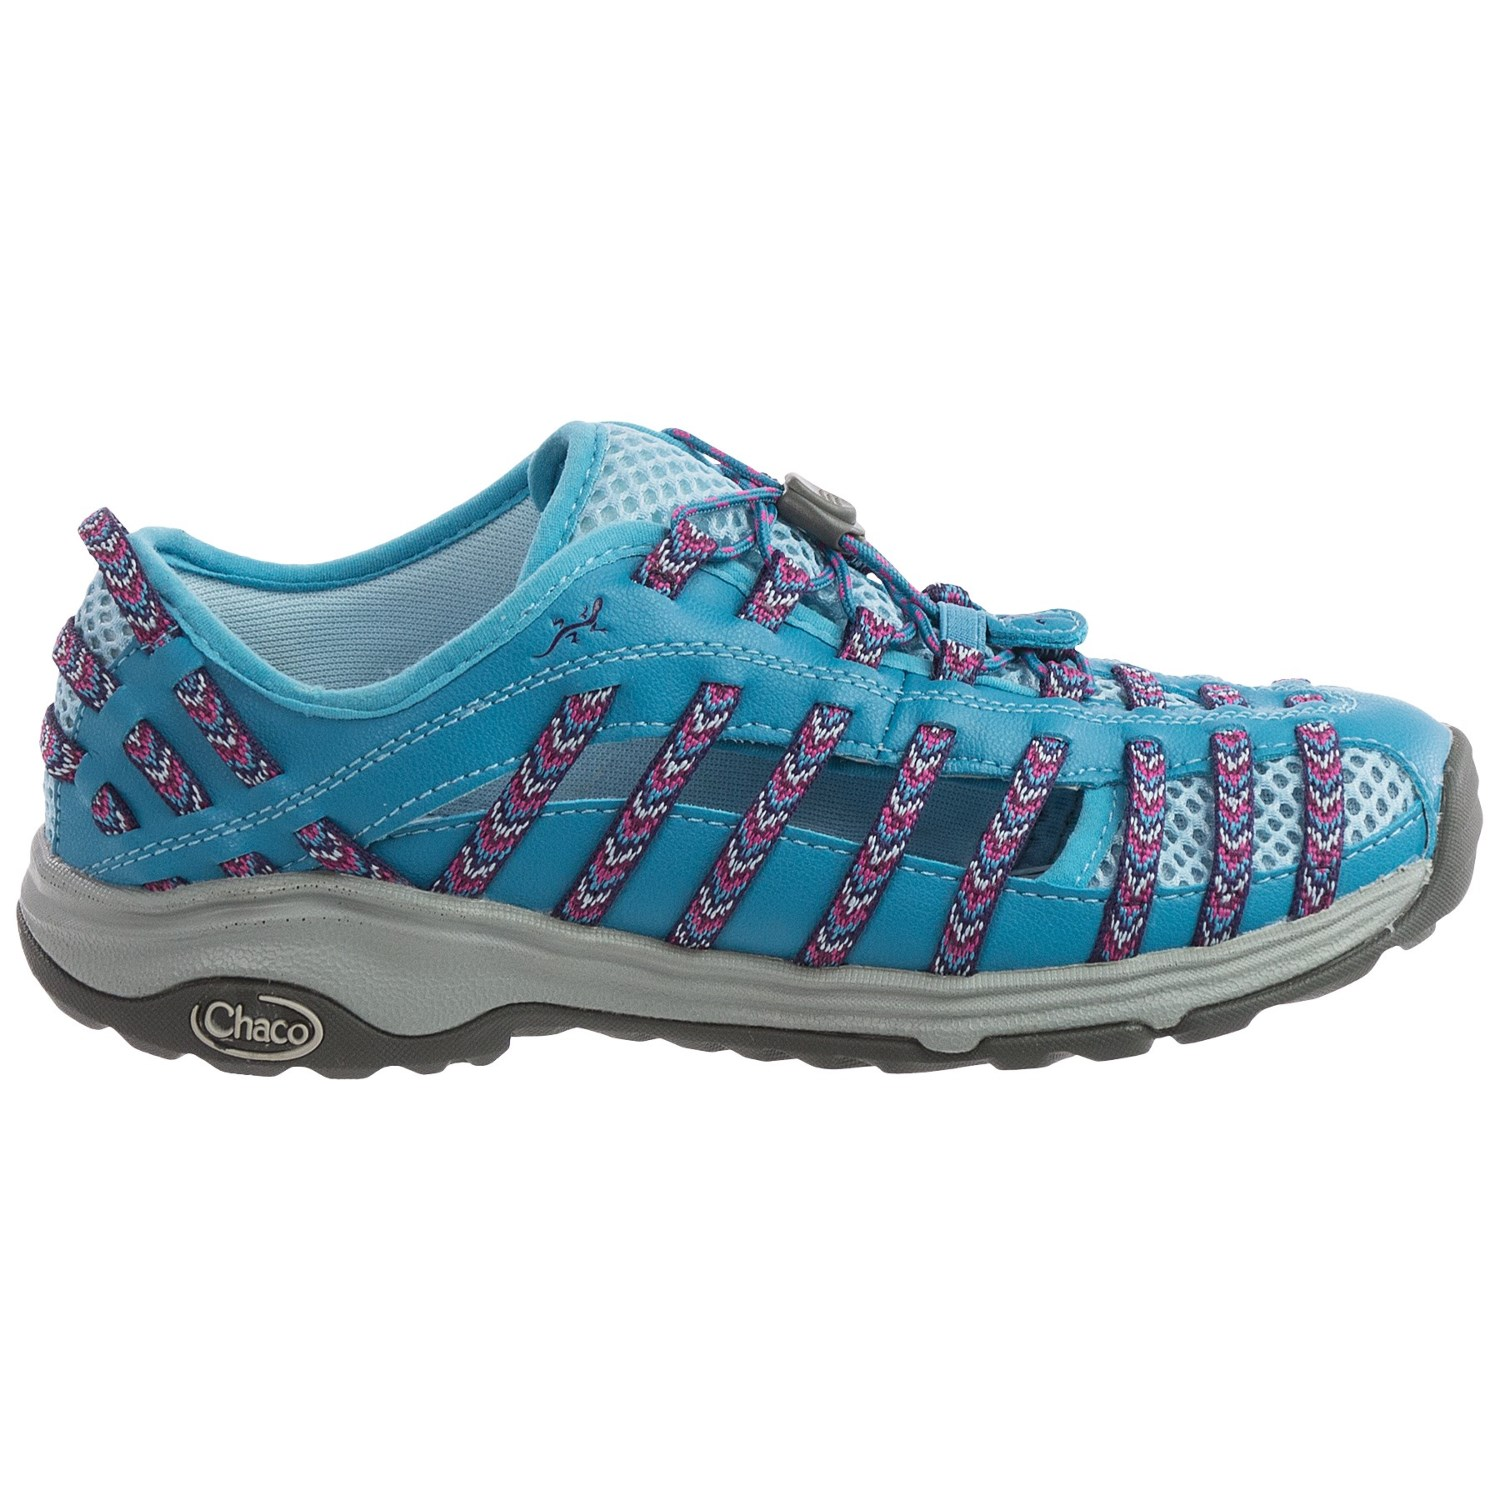 674a570b3ad4 Chaco OutCross Evo 2 Water Shoes (For Women) - Save 45%